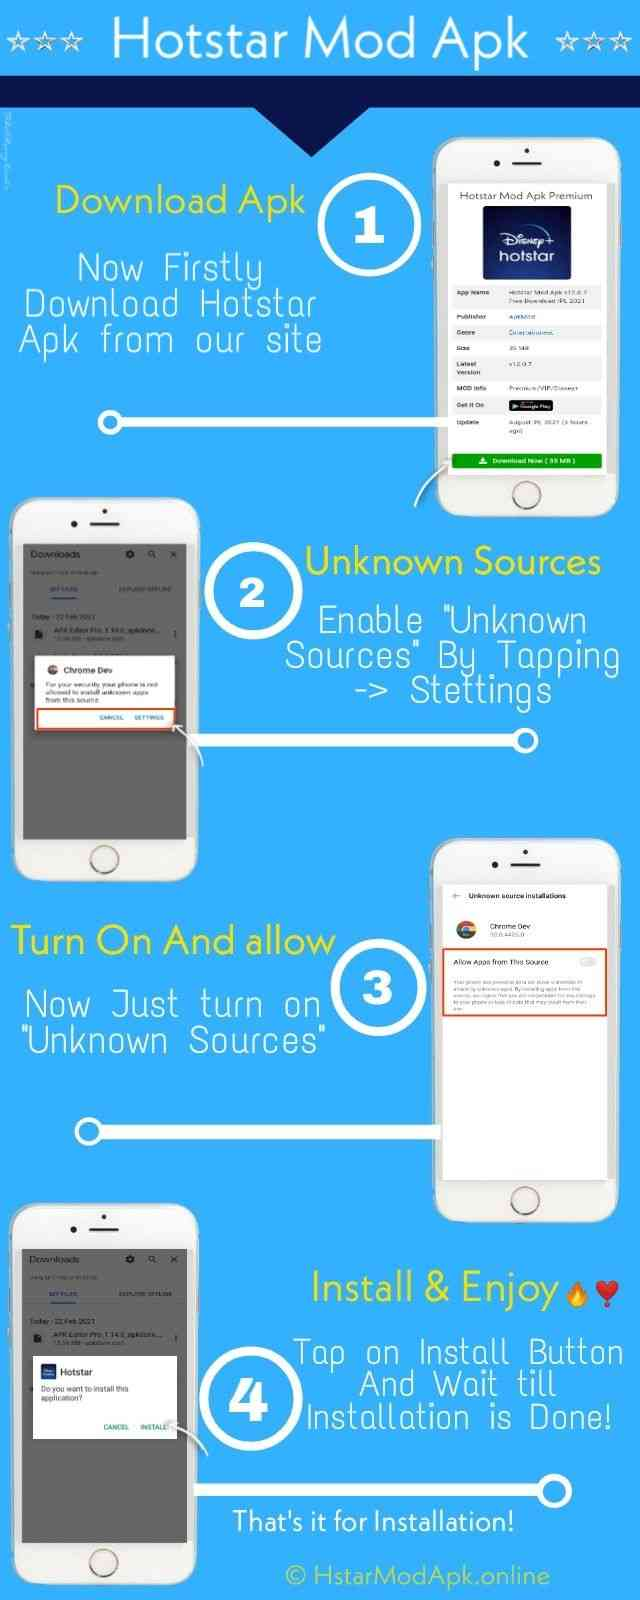 Infographic Image About Hotstar Mod Apk Installation Proccess